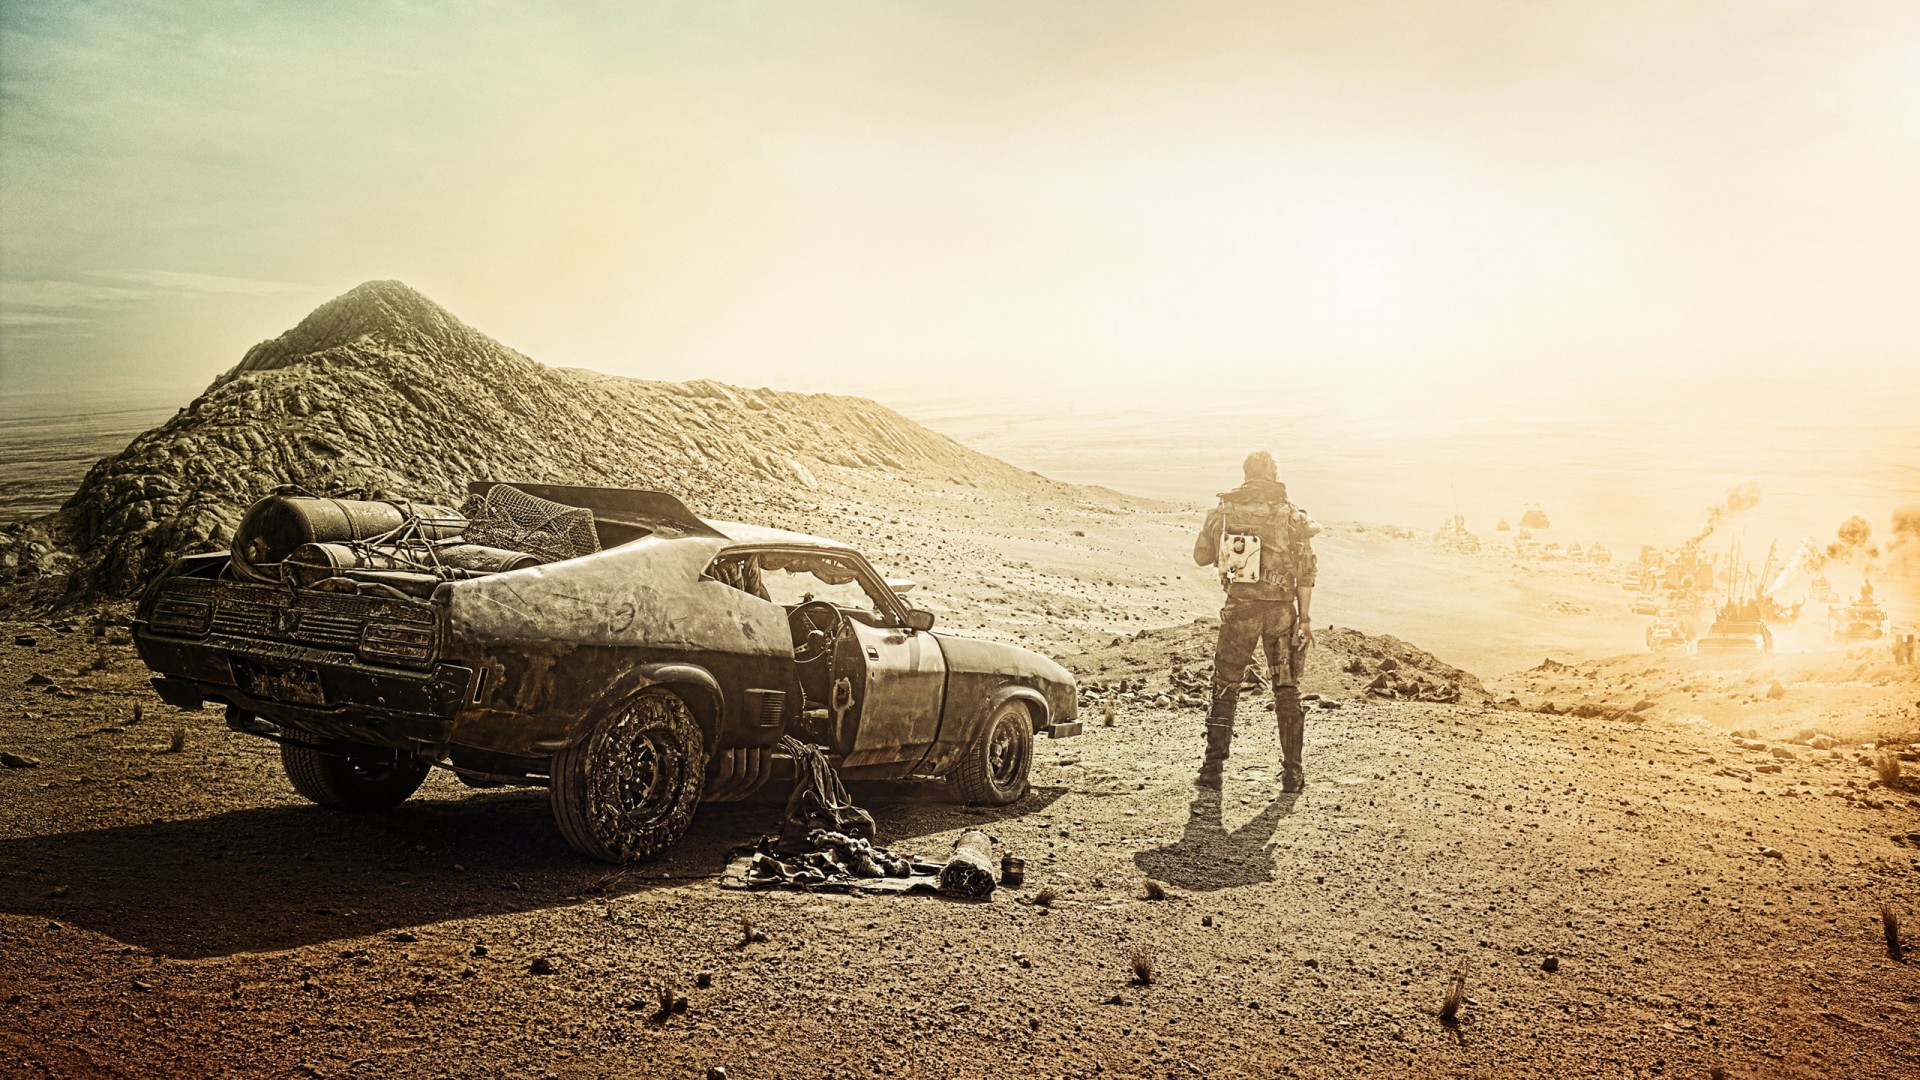 3d Wallpaper For Apple Ipad Mad Max Fury Road 2015 Movie Wallpapers Hd Wallpapers